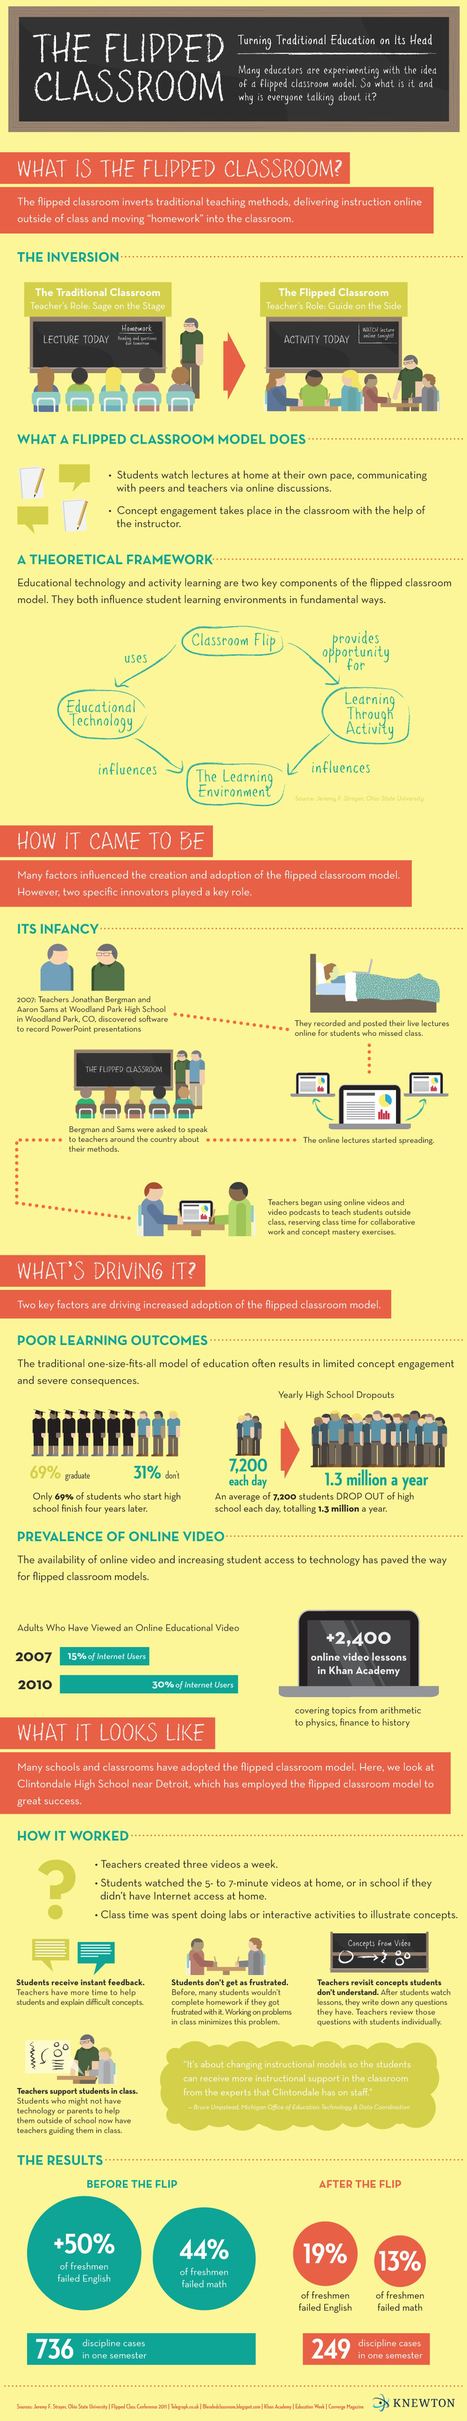 FLIPPED CLASSROOM - CLASSE INVERSEE | An INFOGRAPHIC introduction | EAL | Scoop.it